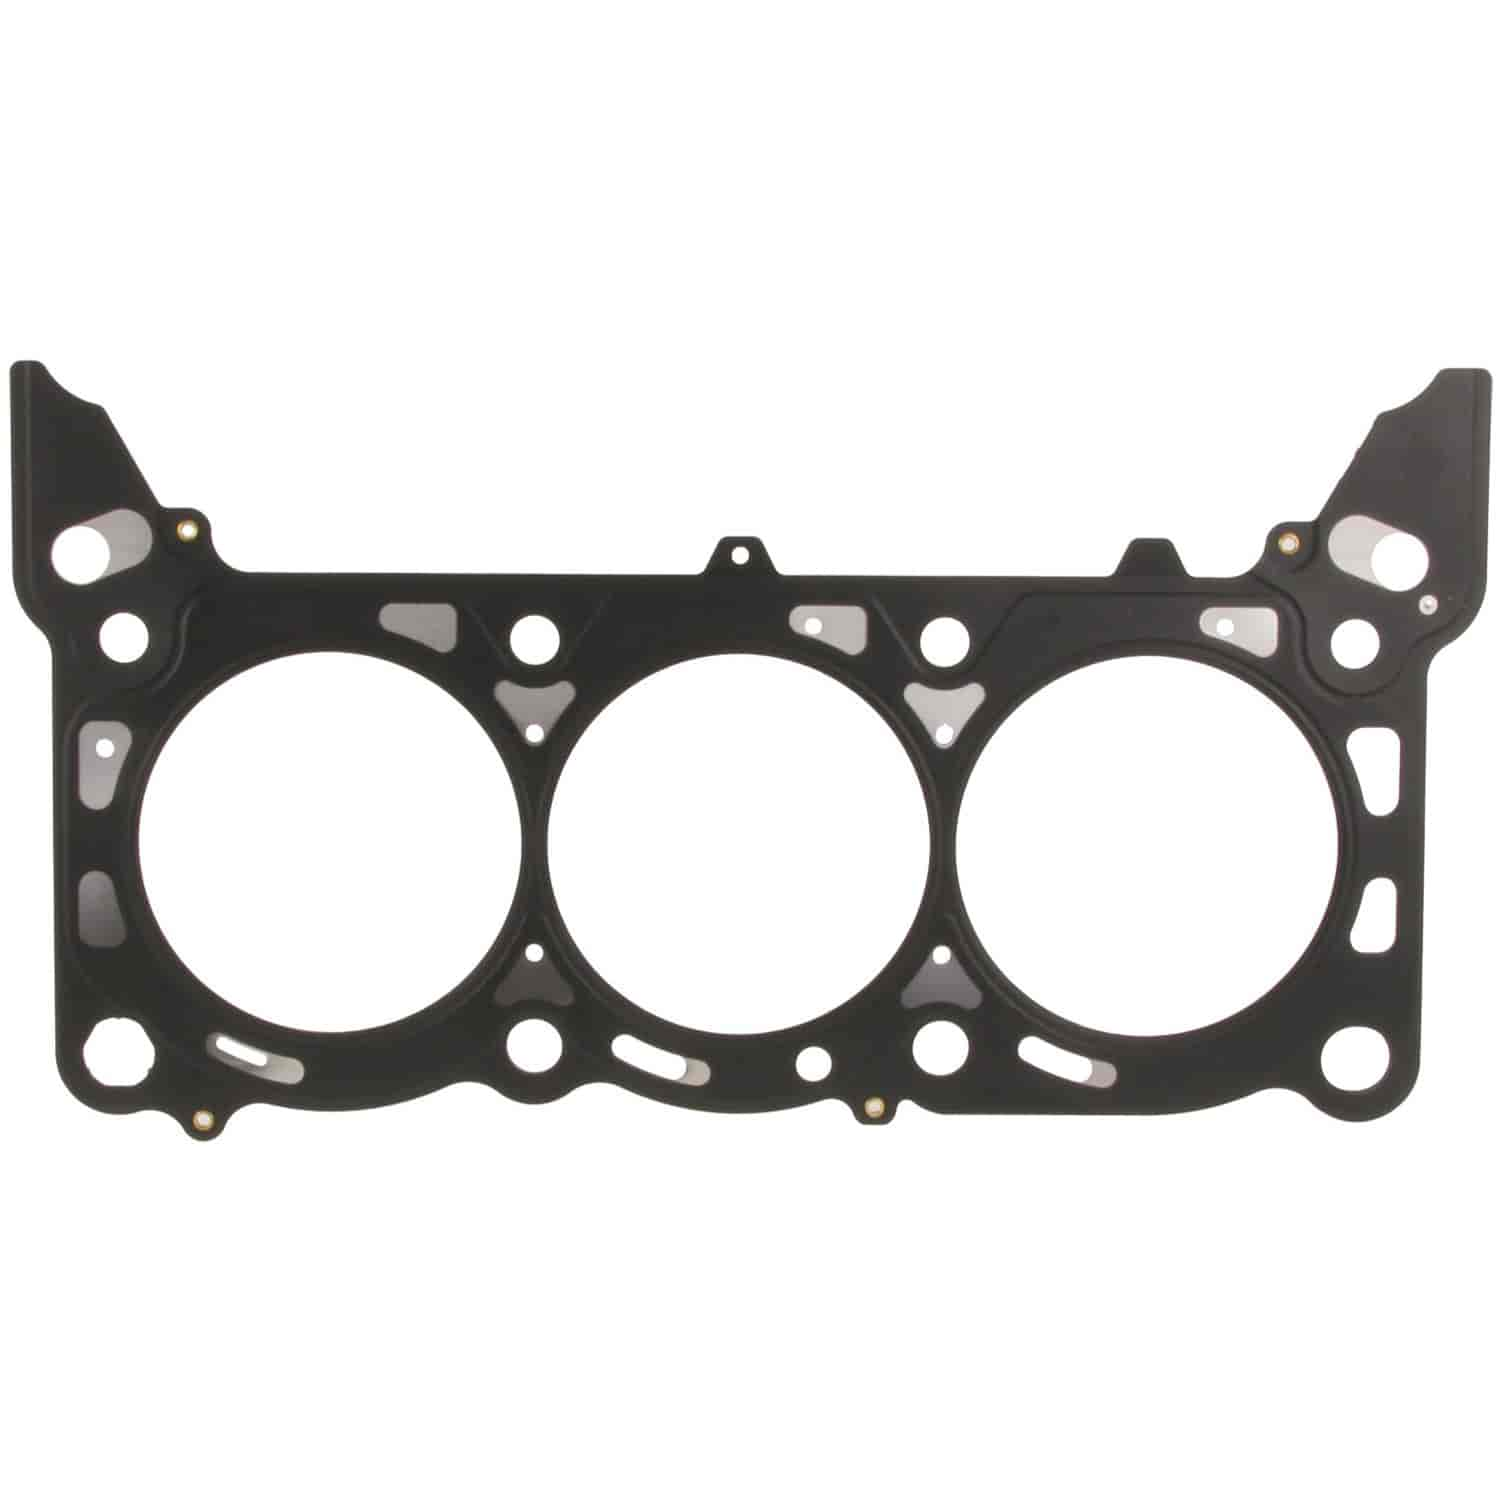 Clevite MAHLE 54453: Cylinder Head Gasket Right Ford